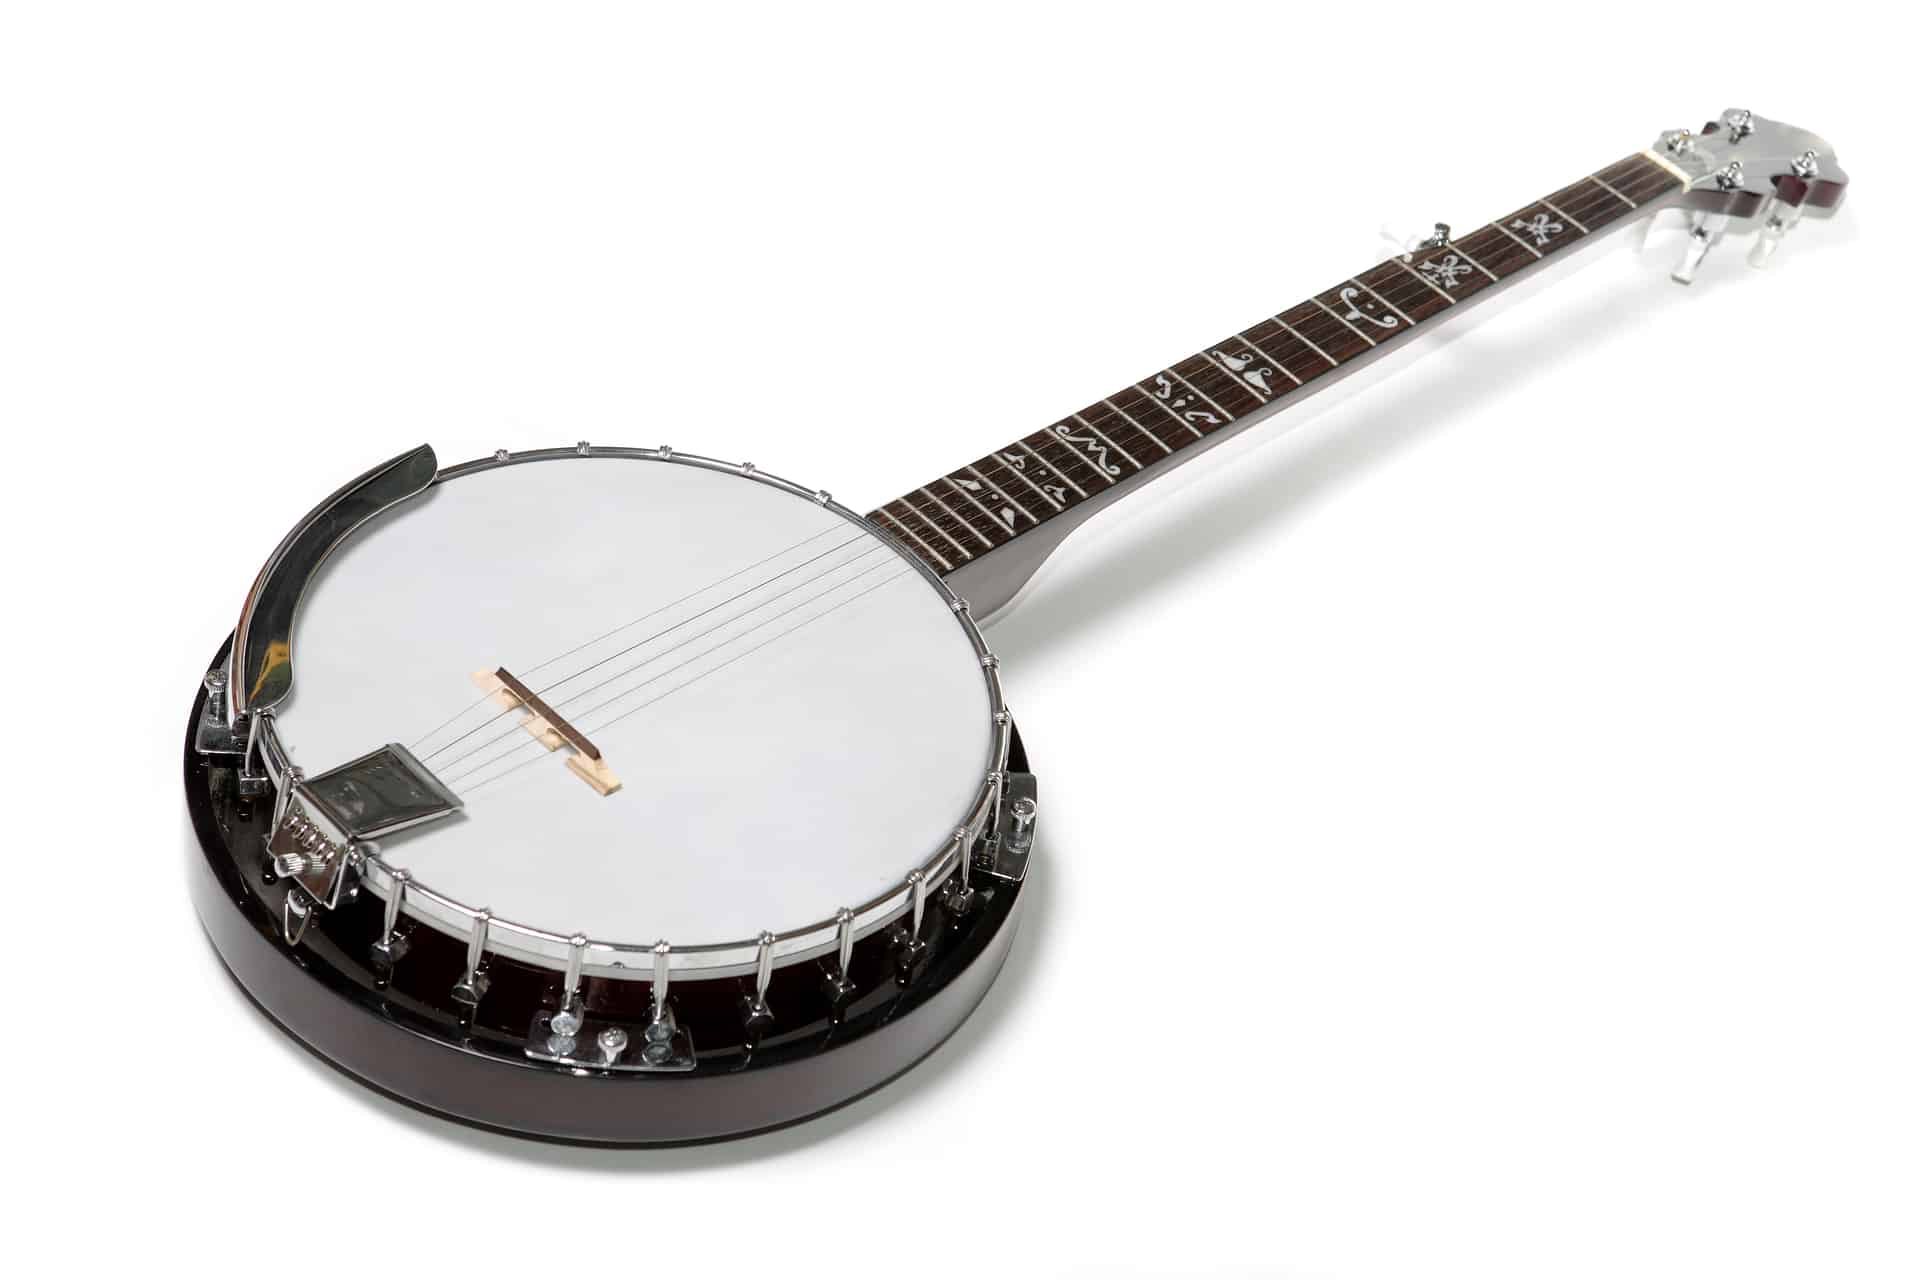 Best Beginner Banjo | Buying Guides & Reviews